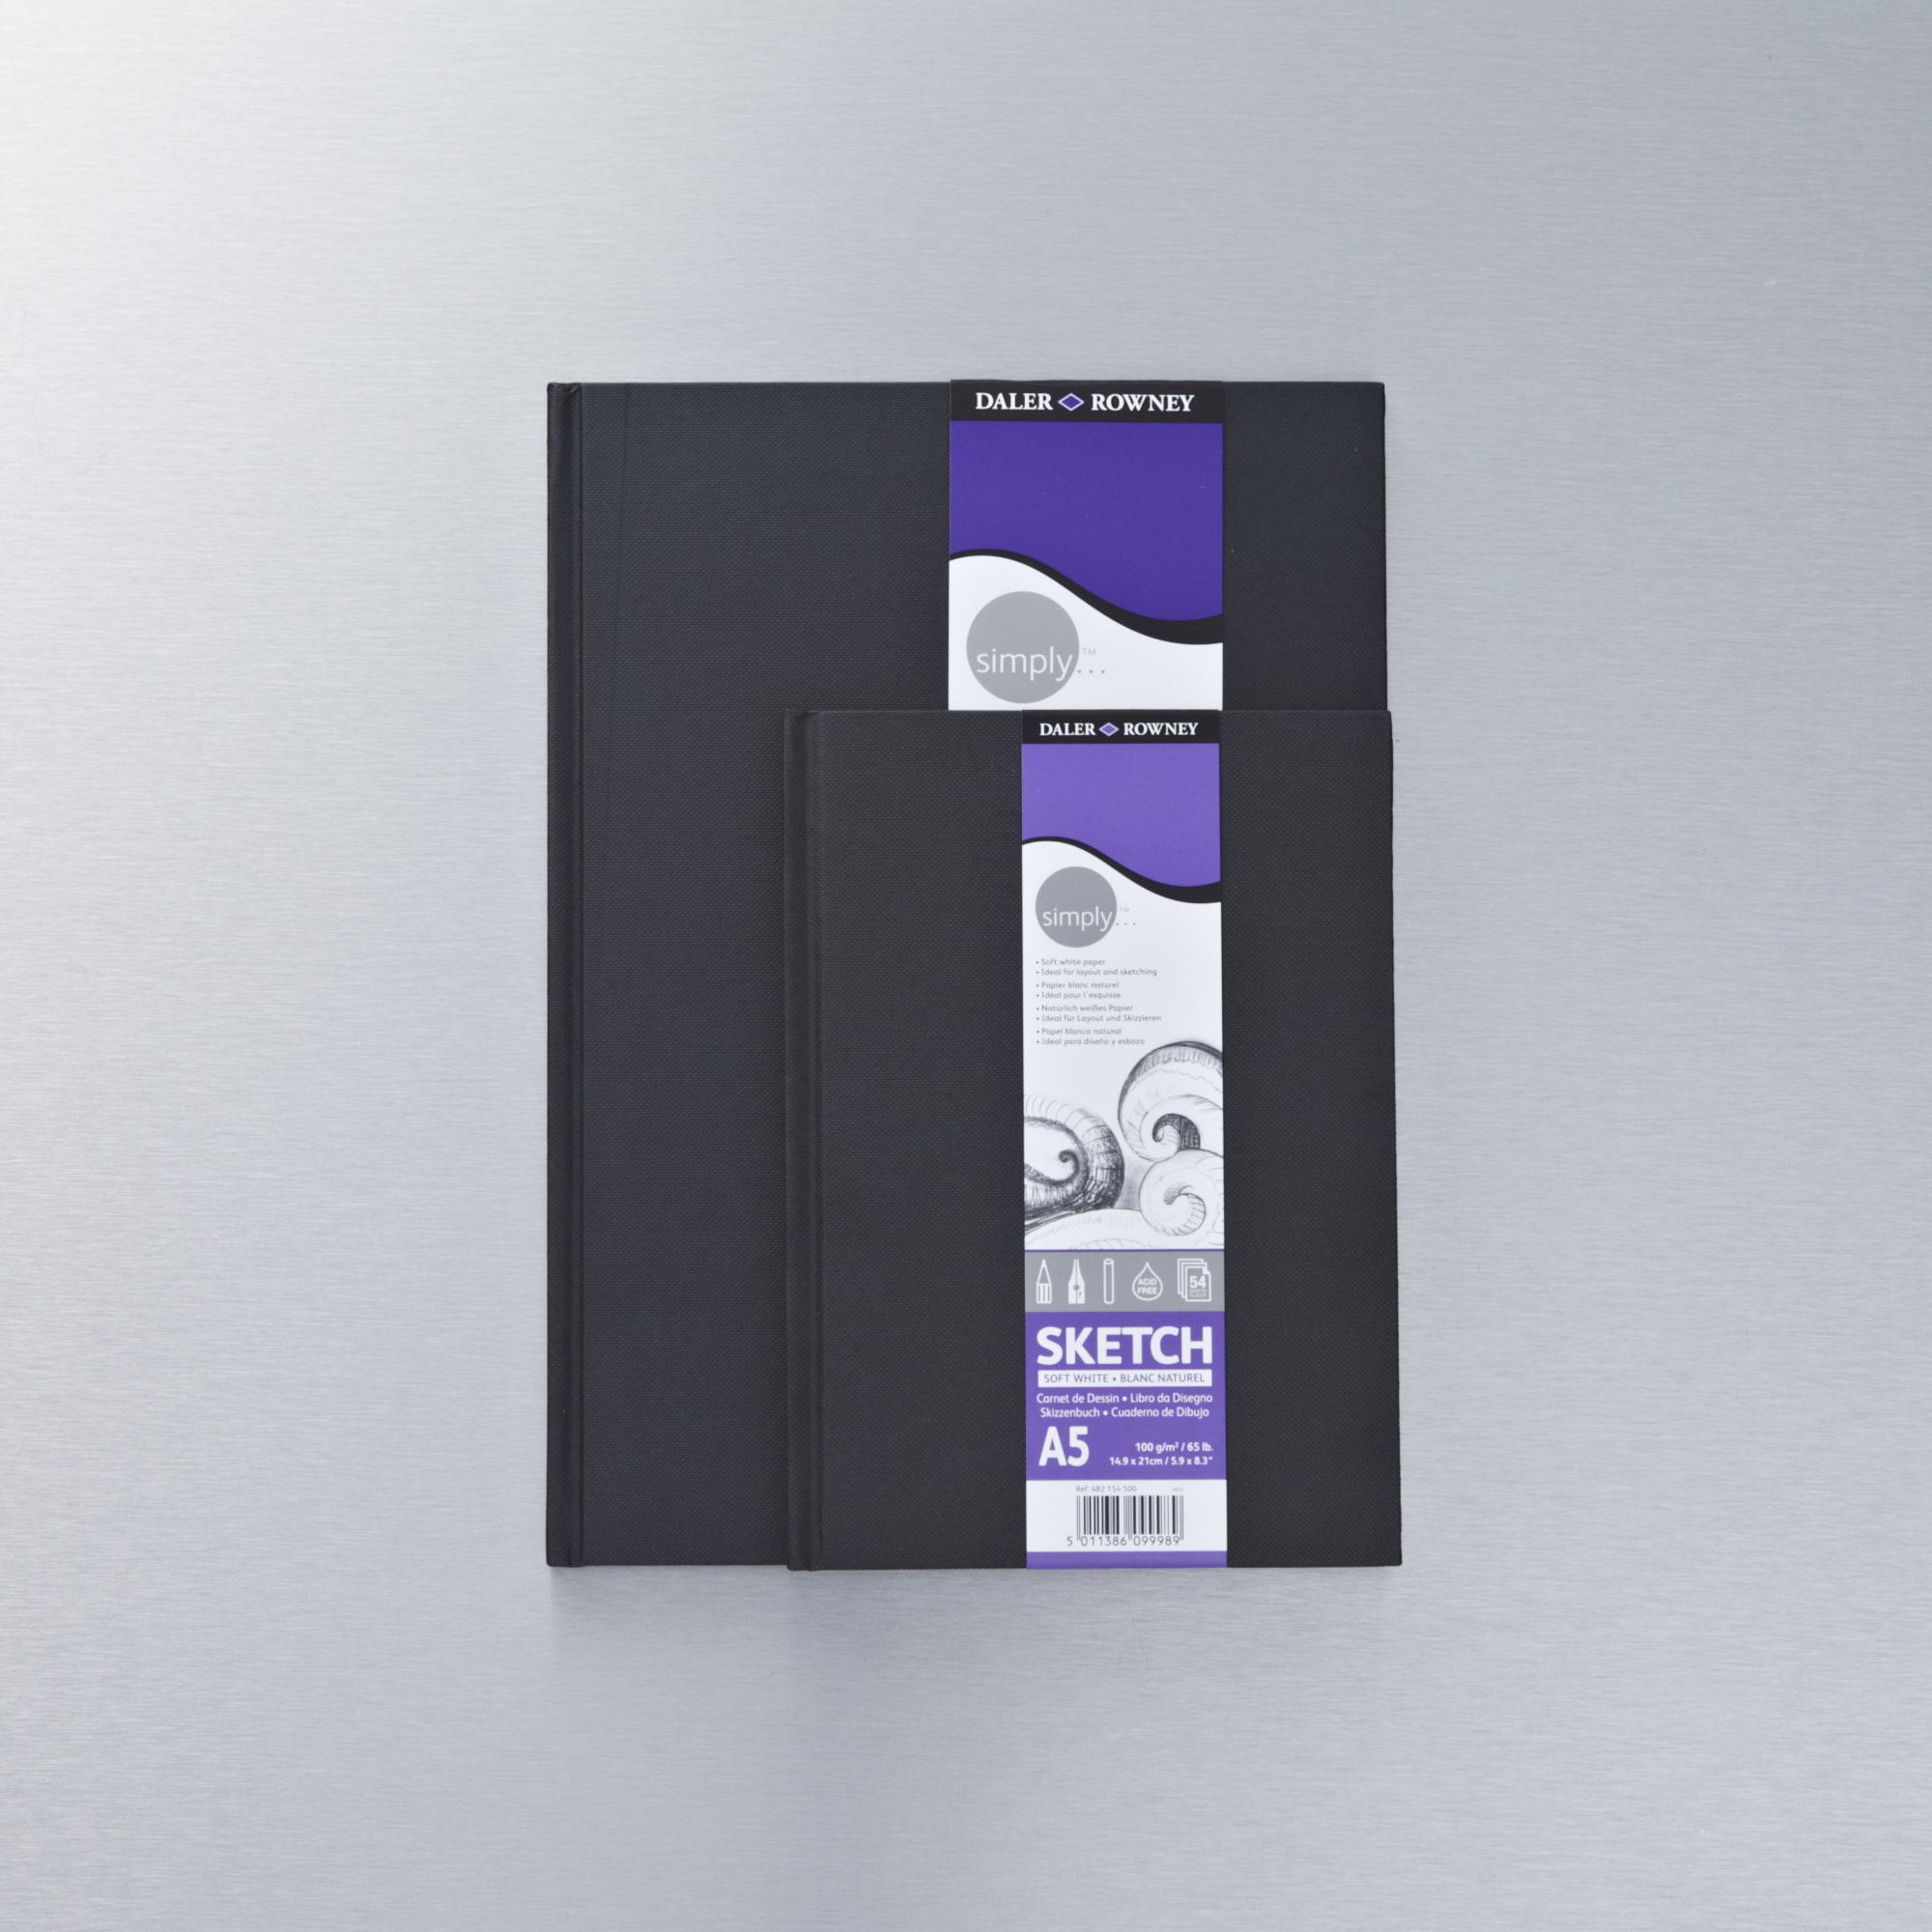 Daler rowney simply slim hardbound sketchbook buy for Buy blueprint paper